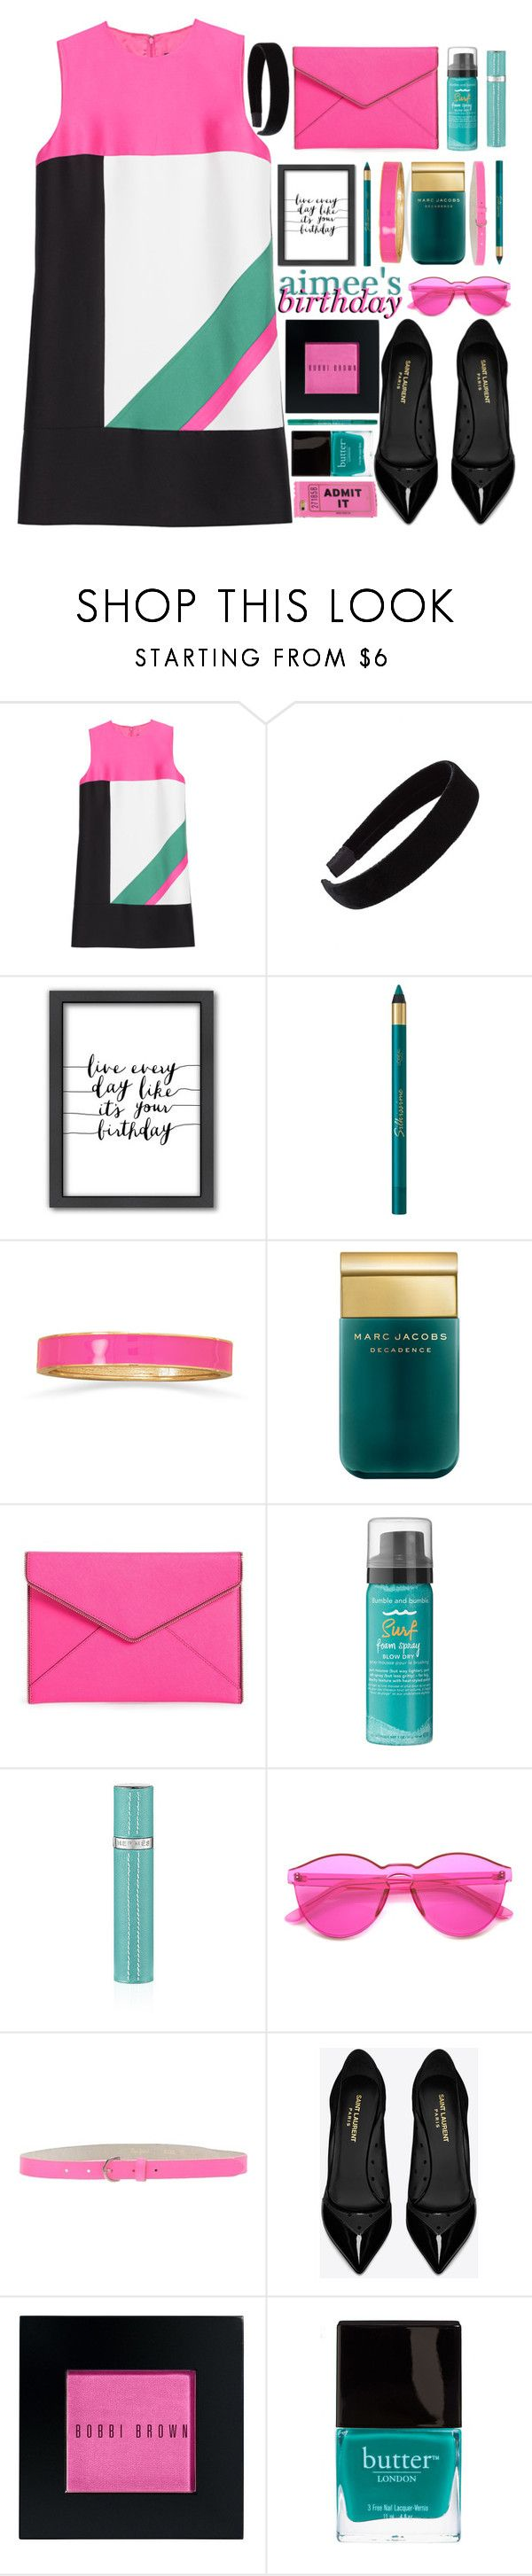 """- Happy Birthday Aimee! -"" by akswiftiegirl ❤ liked on Polyvore featuring Dsquared2, L. Erickson, Americanflat, BillyTheTree, Marc Jacobs, Rebecca Minkoff, Bumble and bumble, Pepe Jeans London, Yves Saint Laurent and Bobbi Brown Cosmetics"